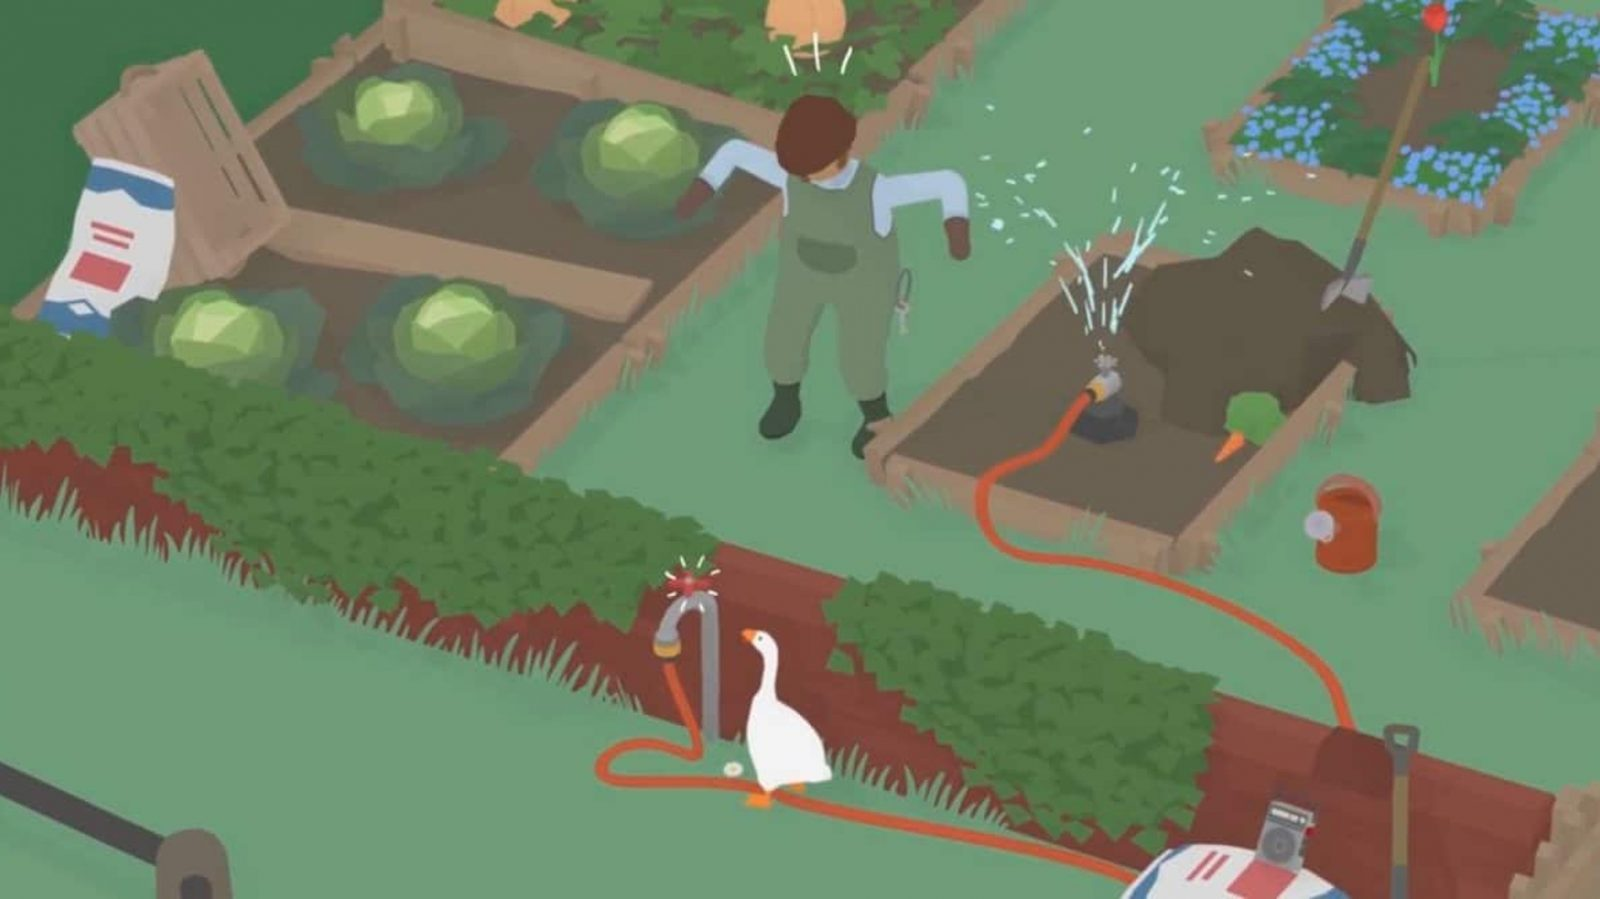 Honk! Untitled Goose Game sales hit a million